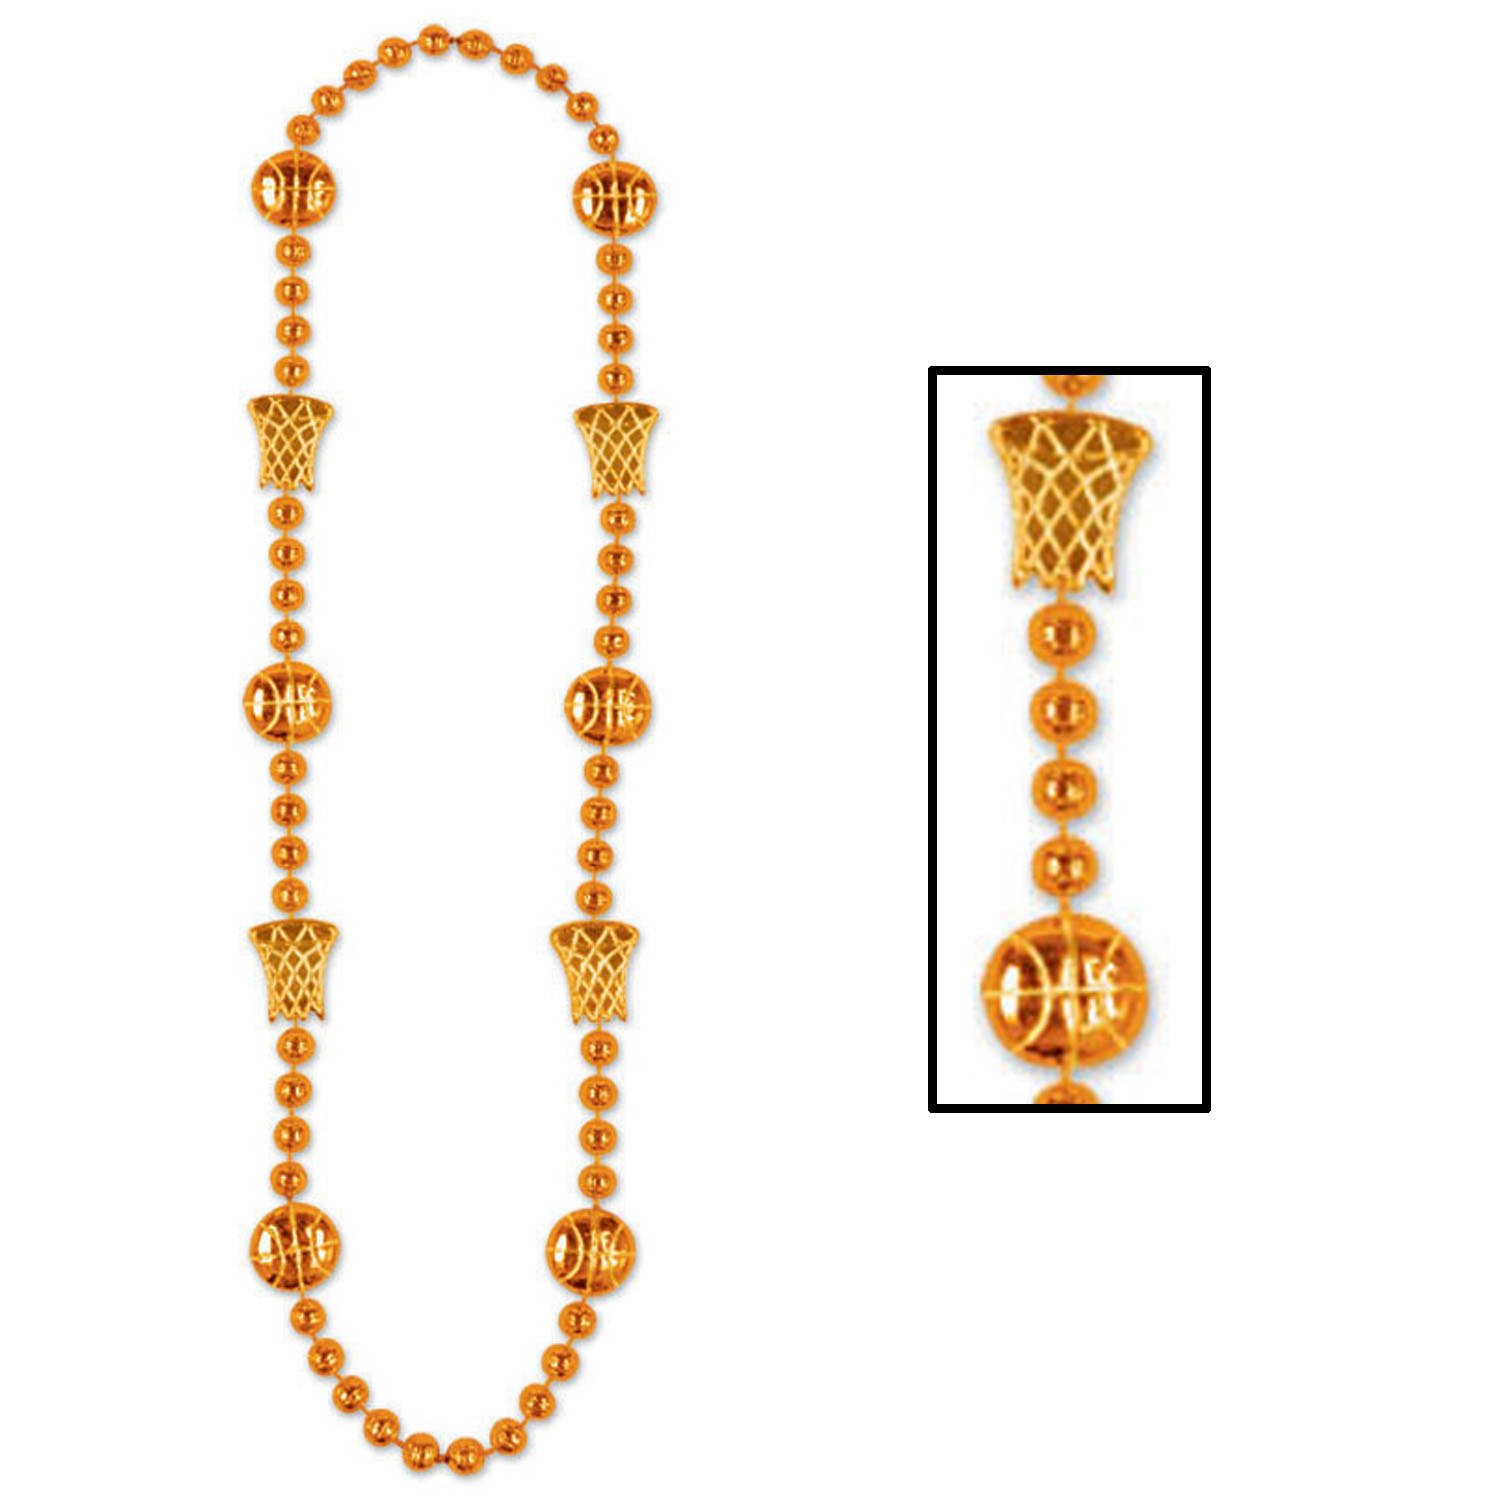 Basketball Beads (Pack of 12) .